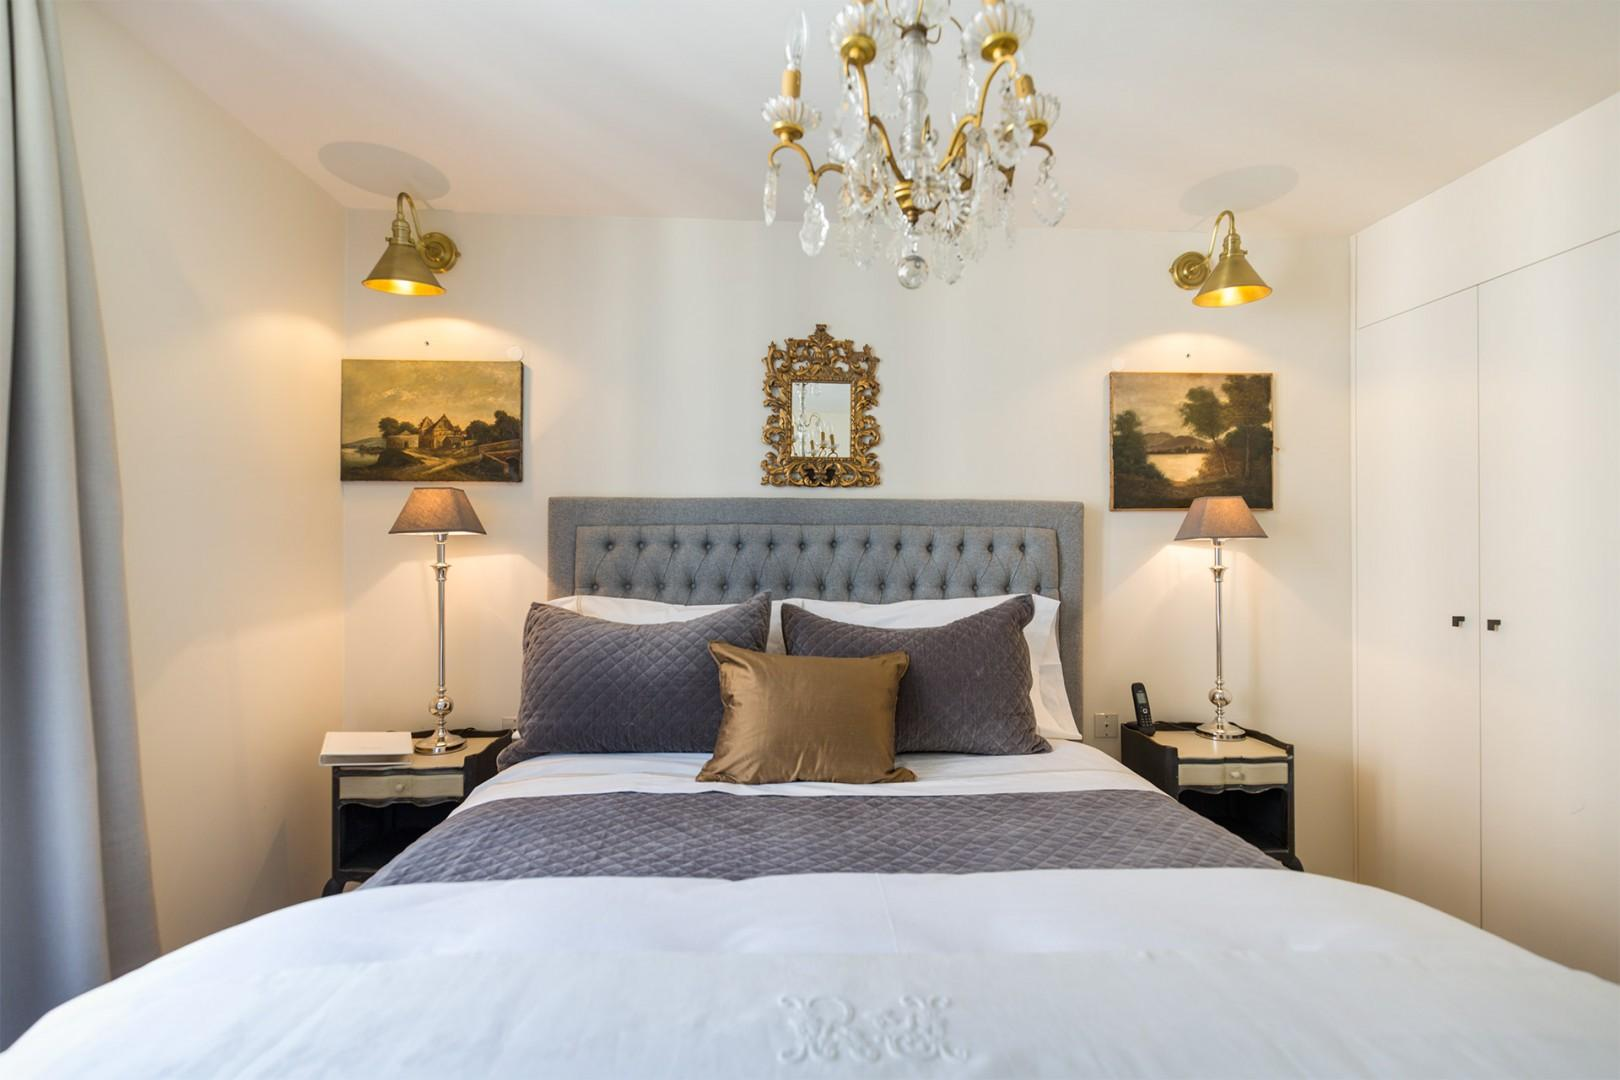 Relax with a book on the sumptuous bed.